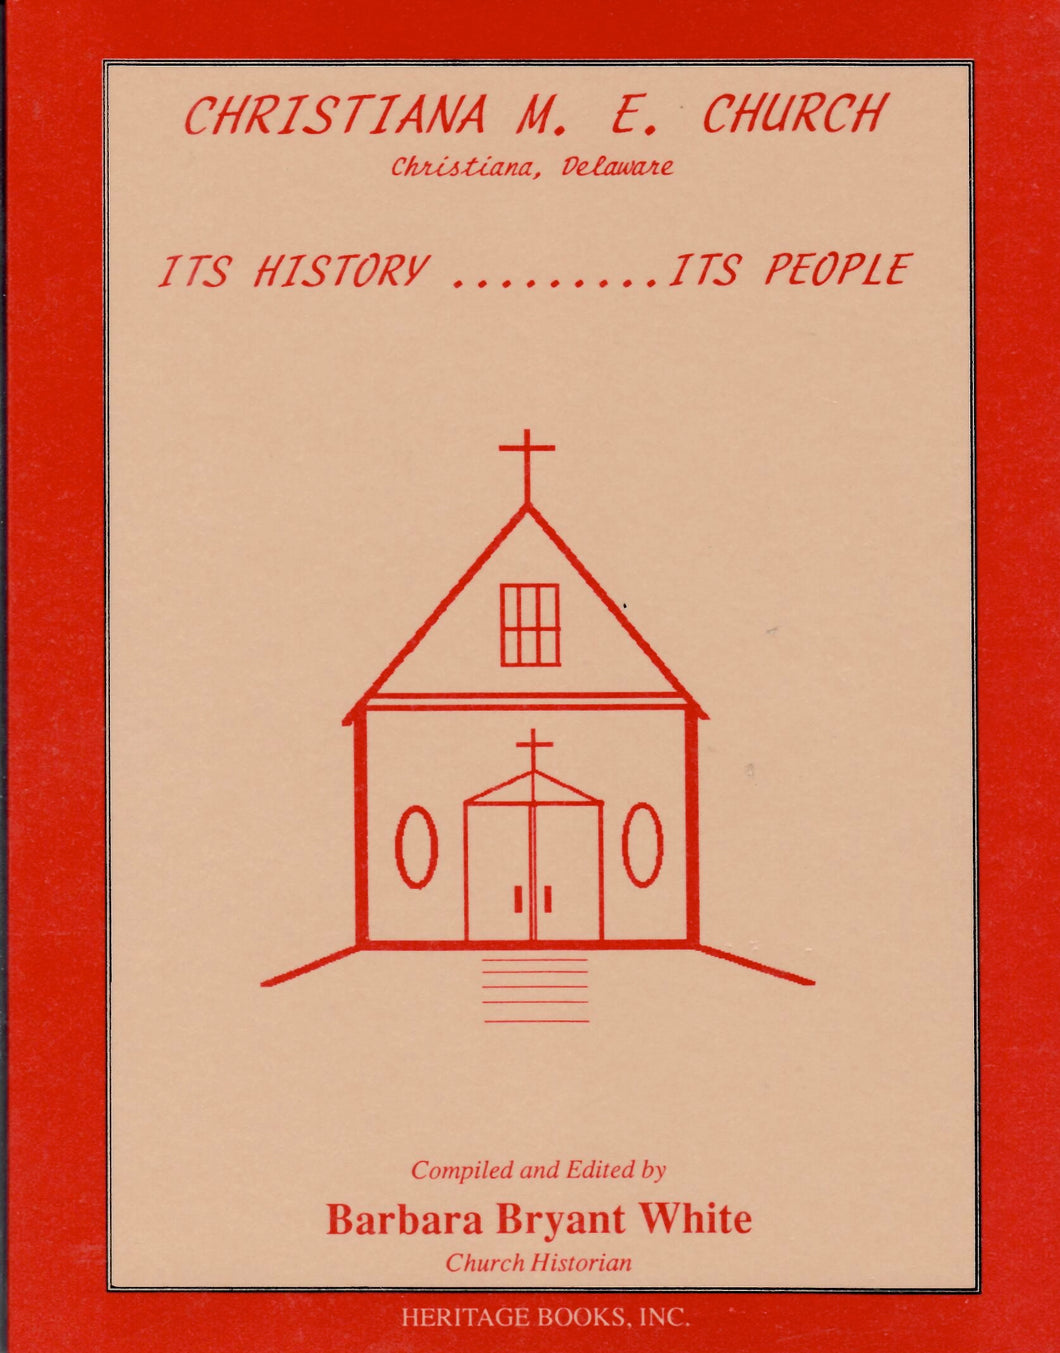 Christiana Methodist Episcopal Church: Its History, Its People